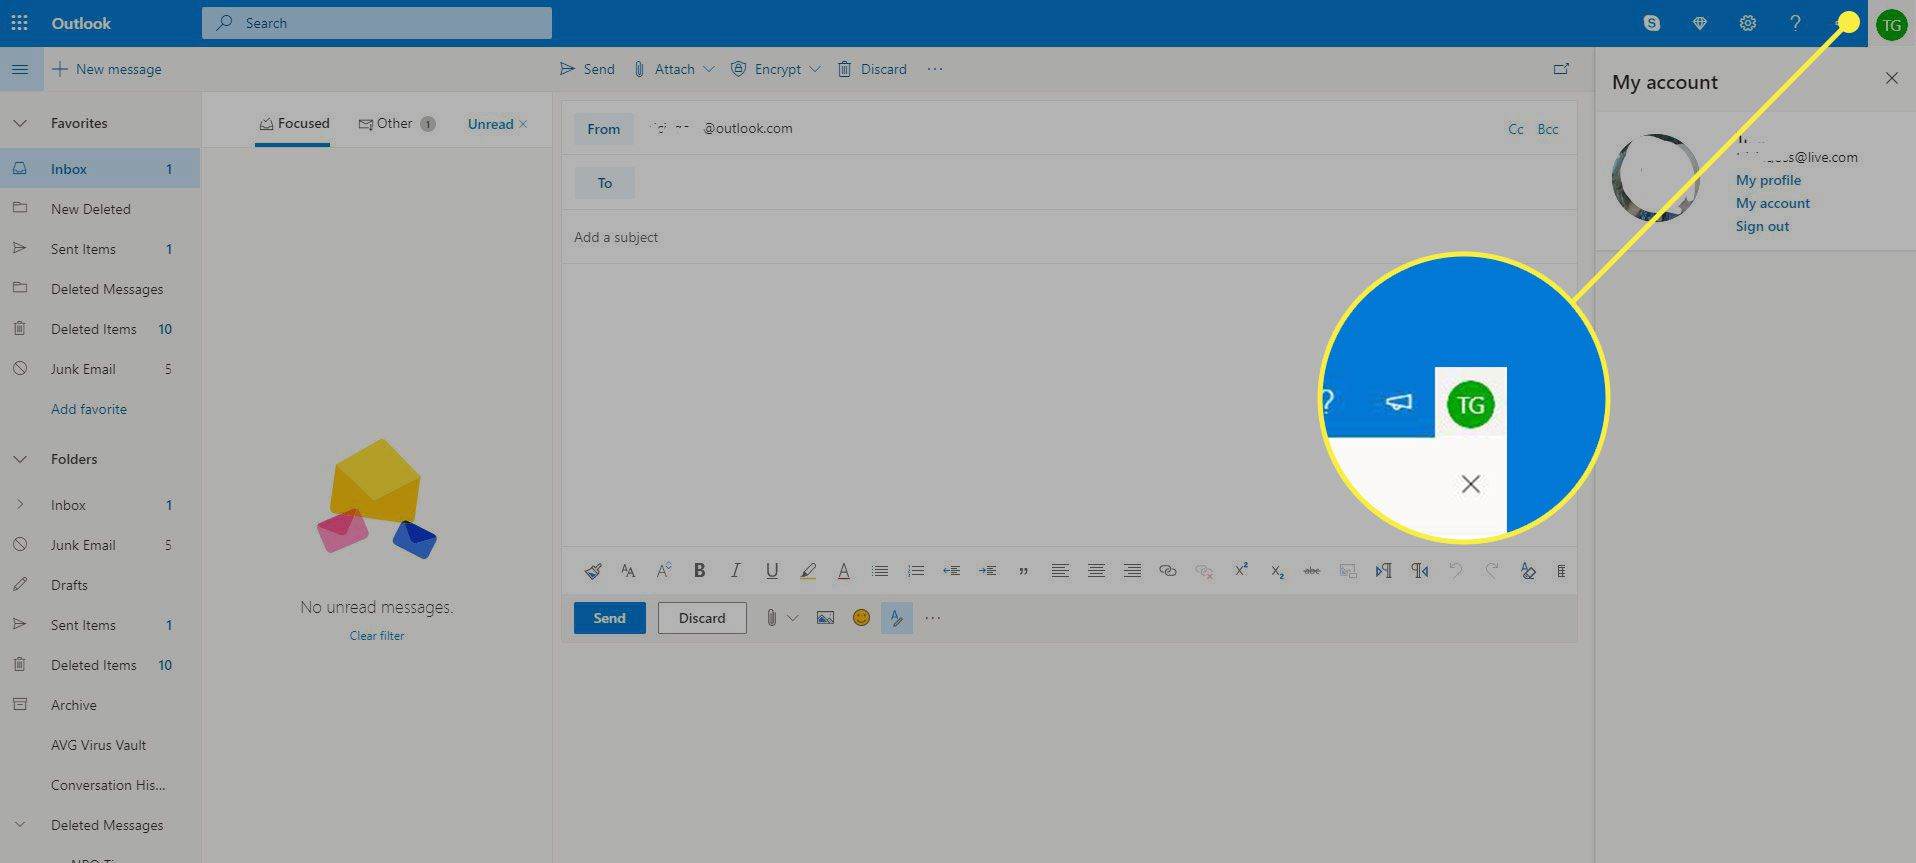 A screenshot of Outlook with the Account icon highlighted